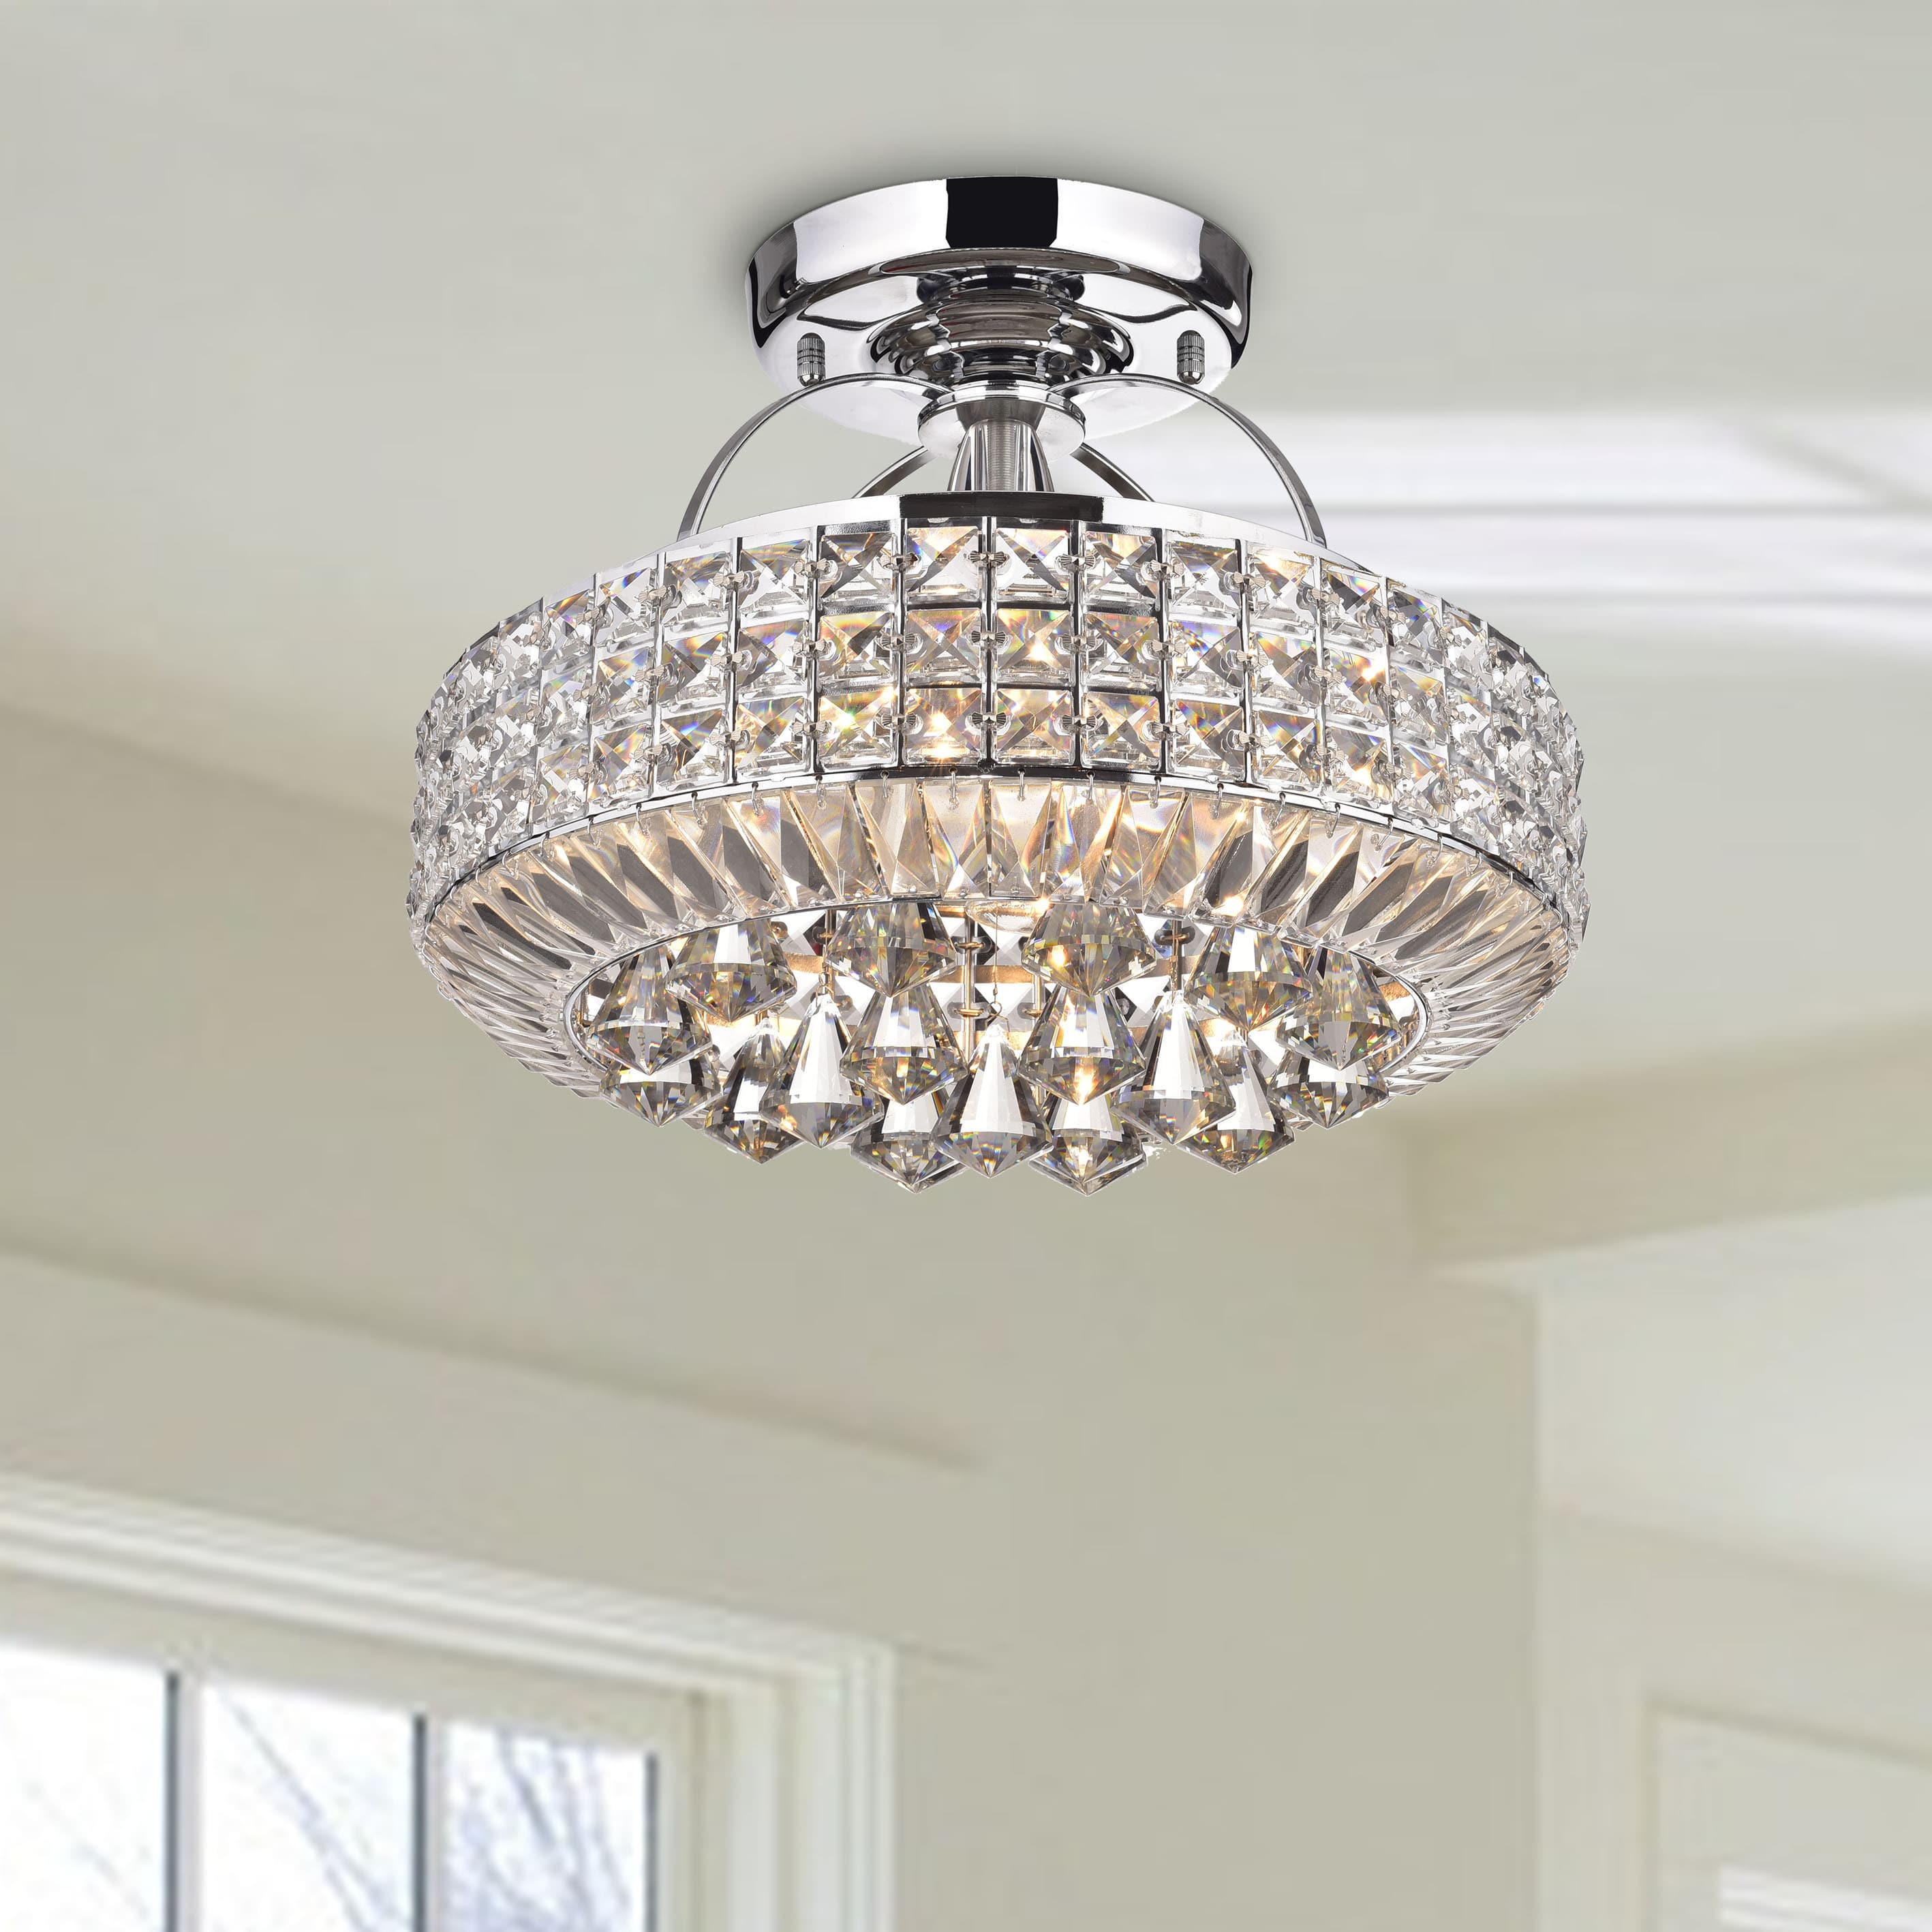 The Lighting Store Jolie Chrome Drum Shade Crystal Semi Flush Mount Chandelier